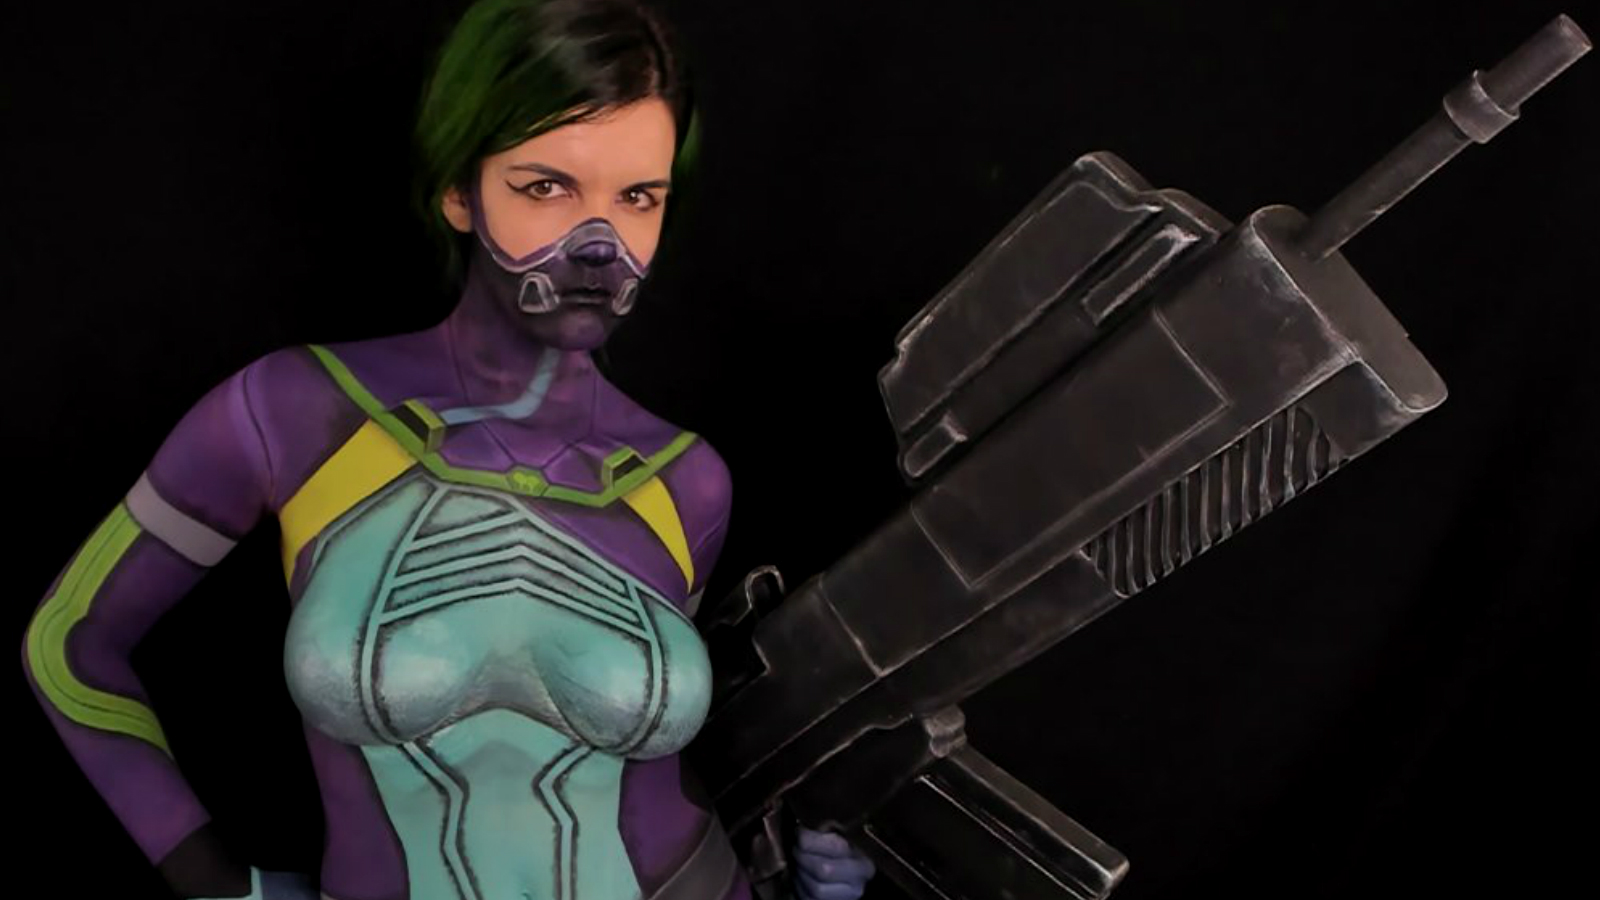 Body painting streamer on Twitch